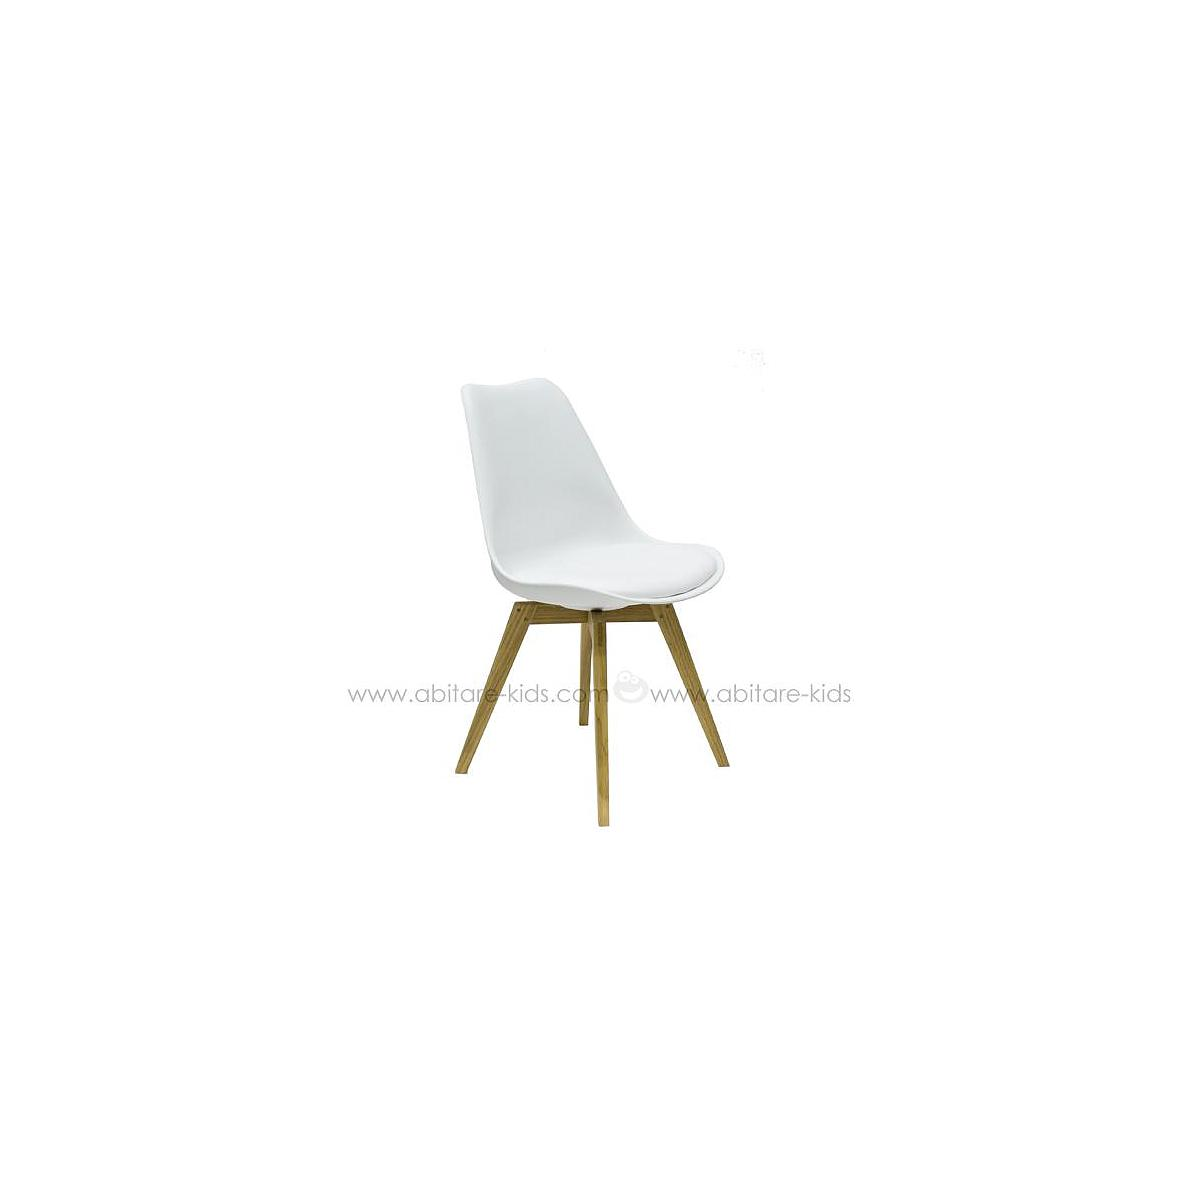 C-BAR by Tenzo Chaise Gina-Bess Assise blanc et pied chêne